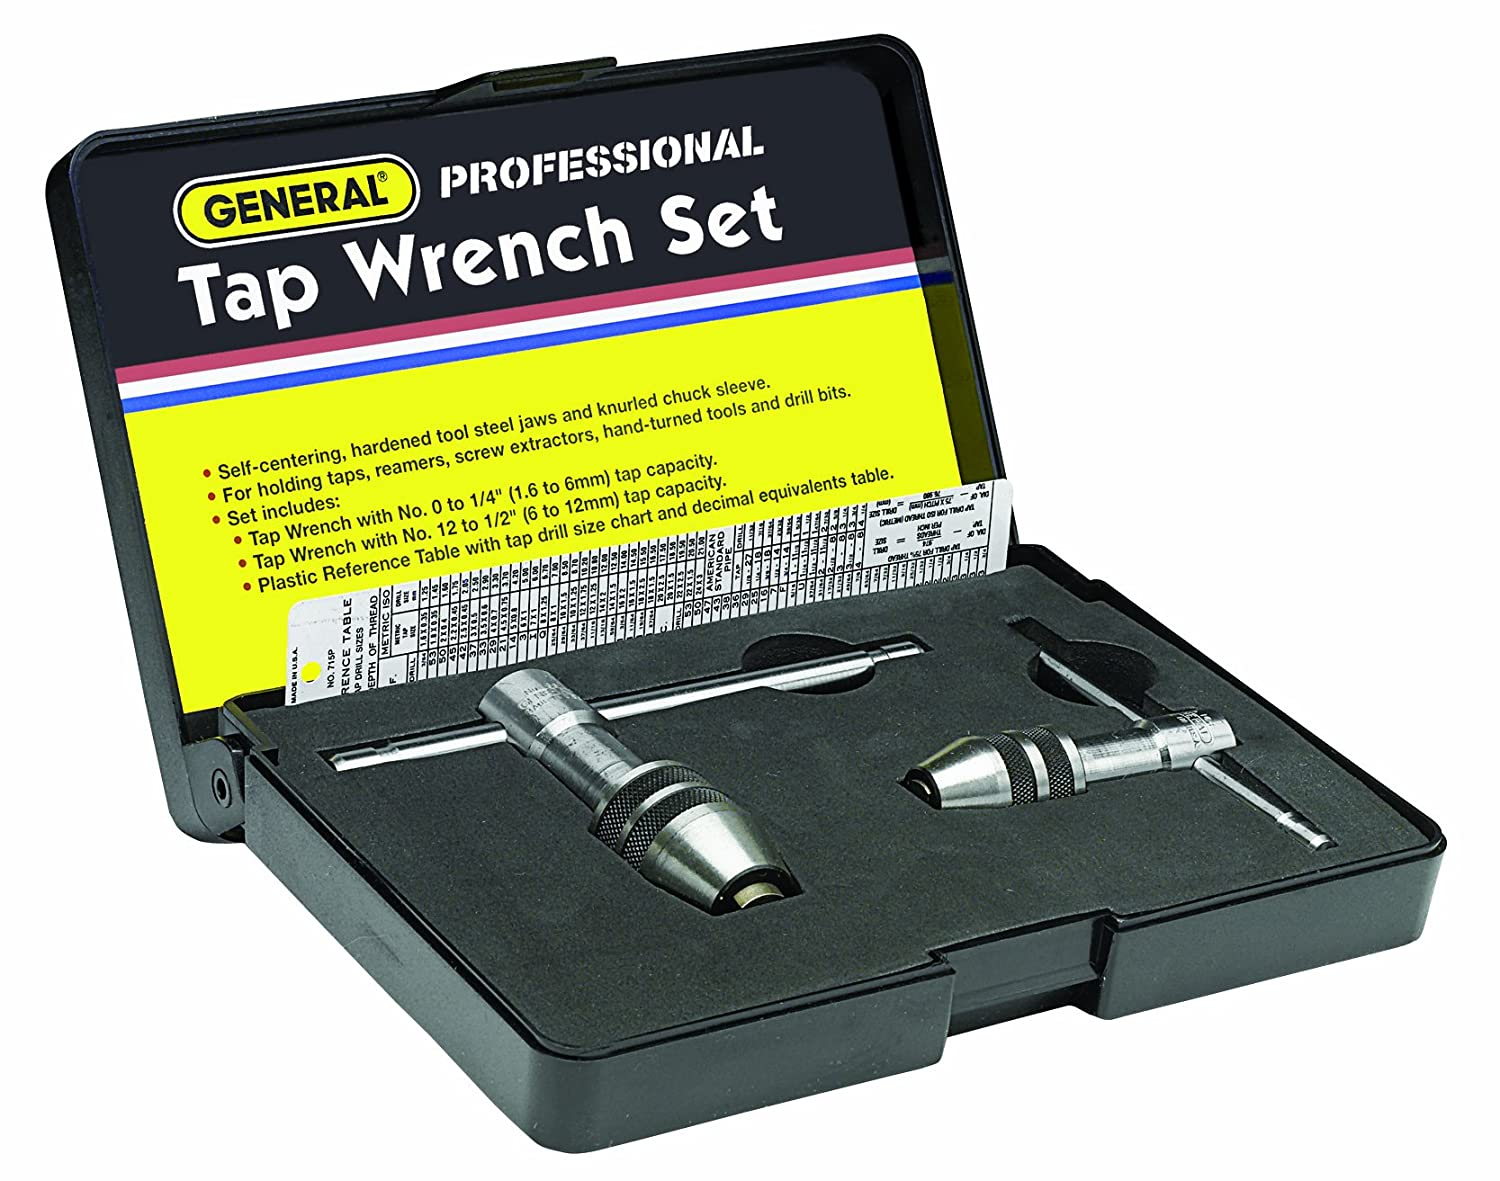 General Tools 167 Professional Tap Wrench Set - Pipe Taps - Amazon.com